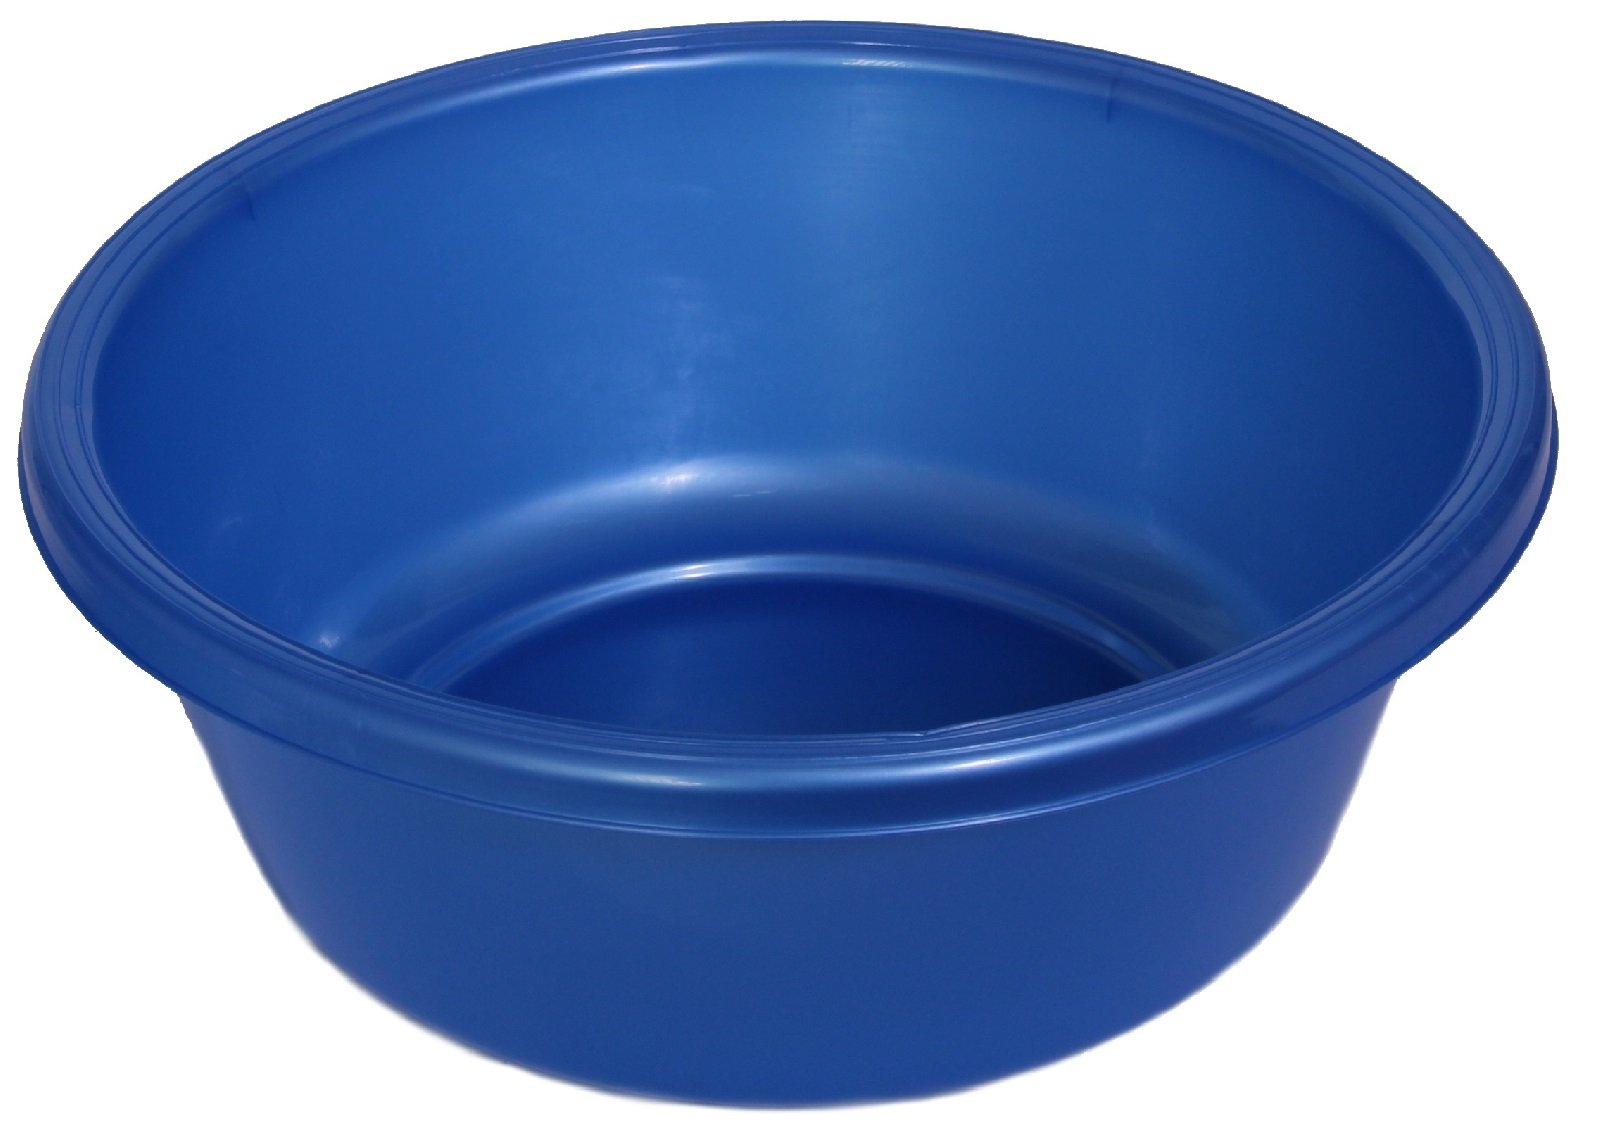 Ybm Home Round Plastic Wash Basin (1151 13 inch, Blue)